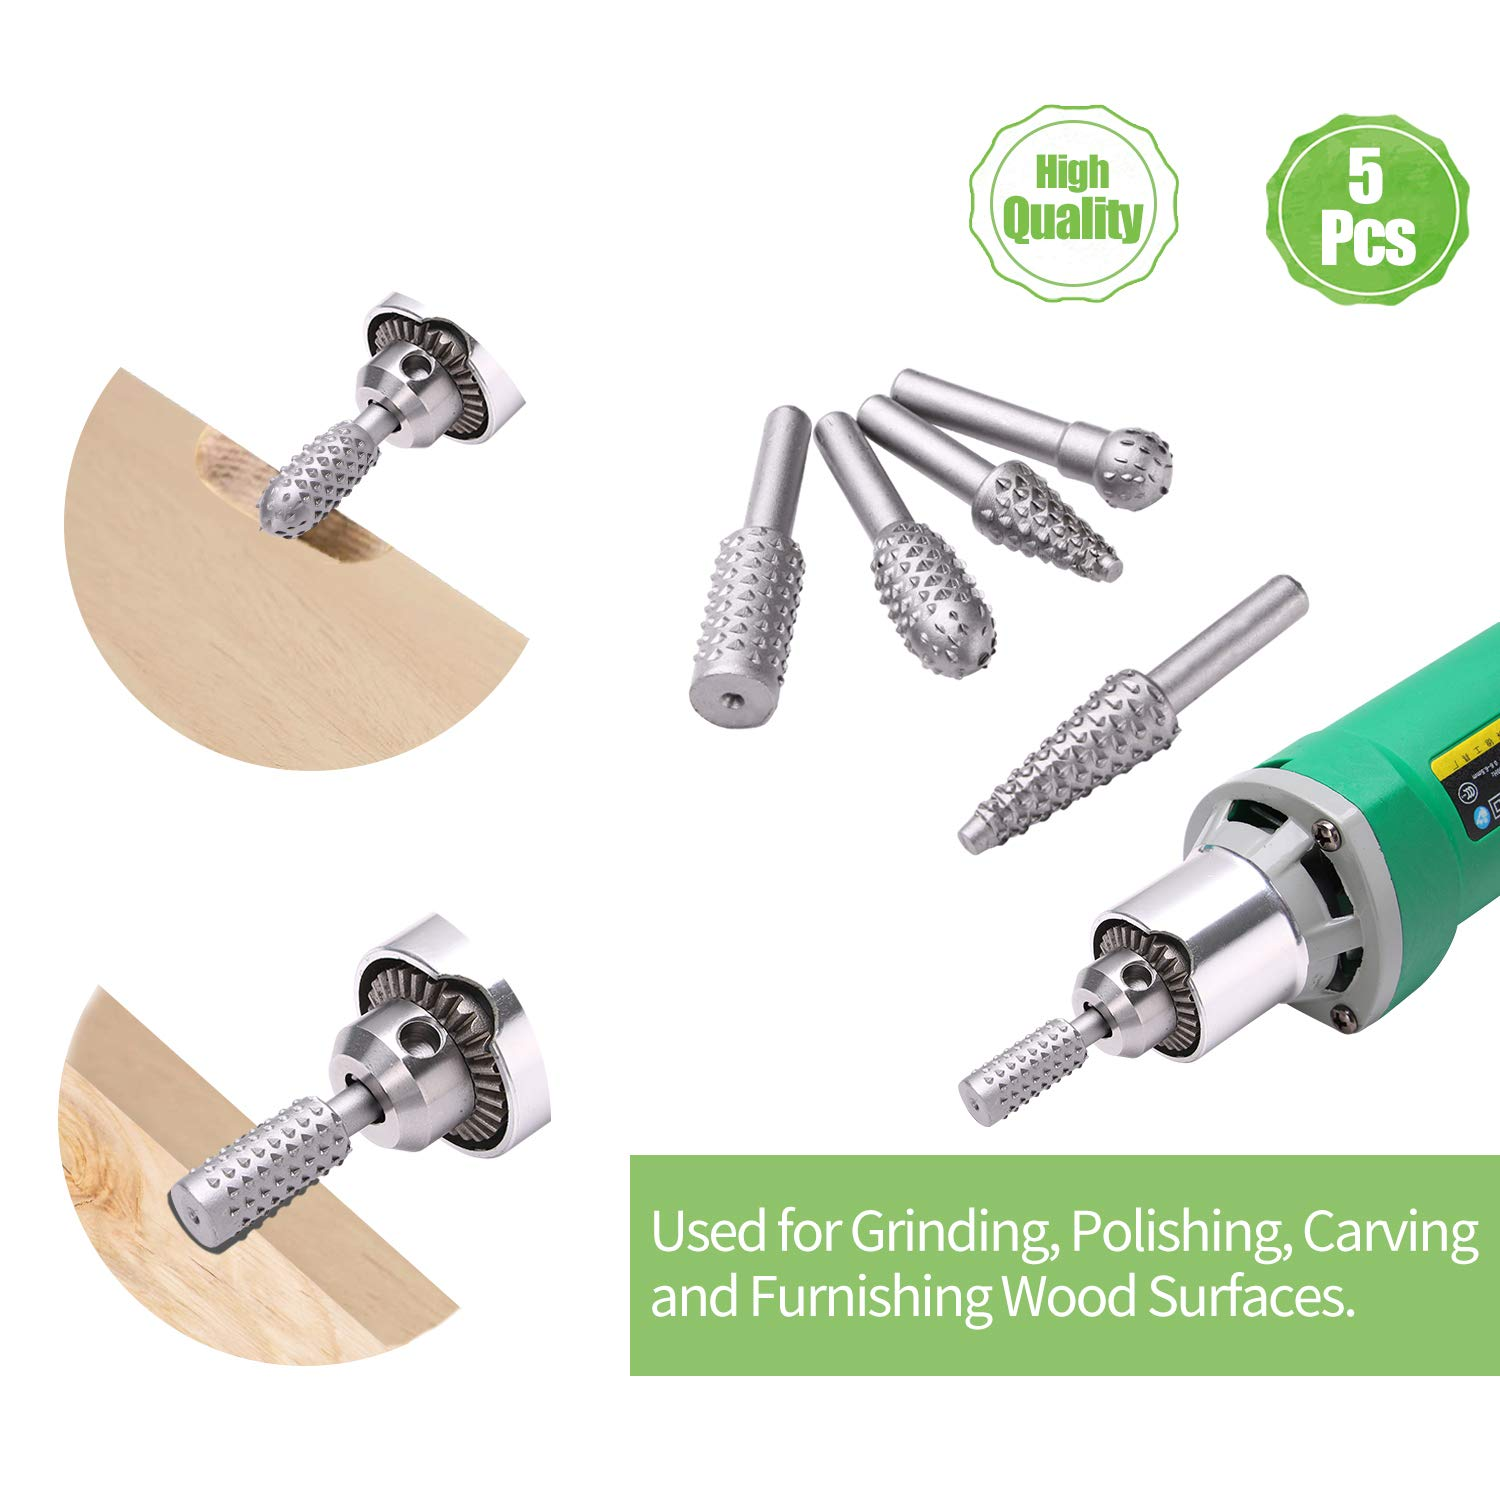 Shaping 2 Pack, 4 1//2 Inch,7//8 Arbor /& Carbide Burr Set Wood Carving Disc Sculpting Grinder Attachments for Wood Carving 5 Pcs, 1//4 Shank Diameter Cutting Drilling and Polishing